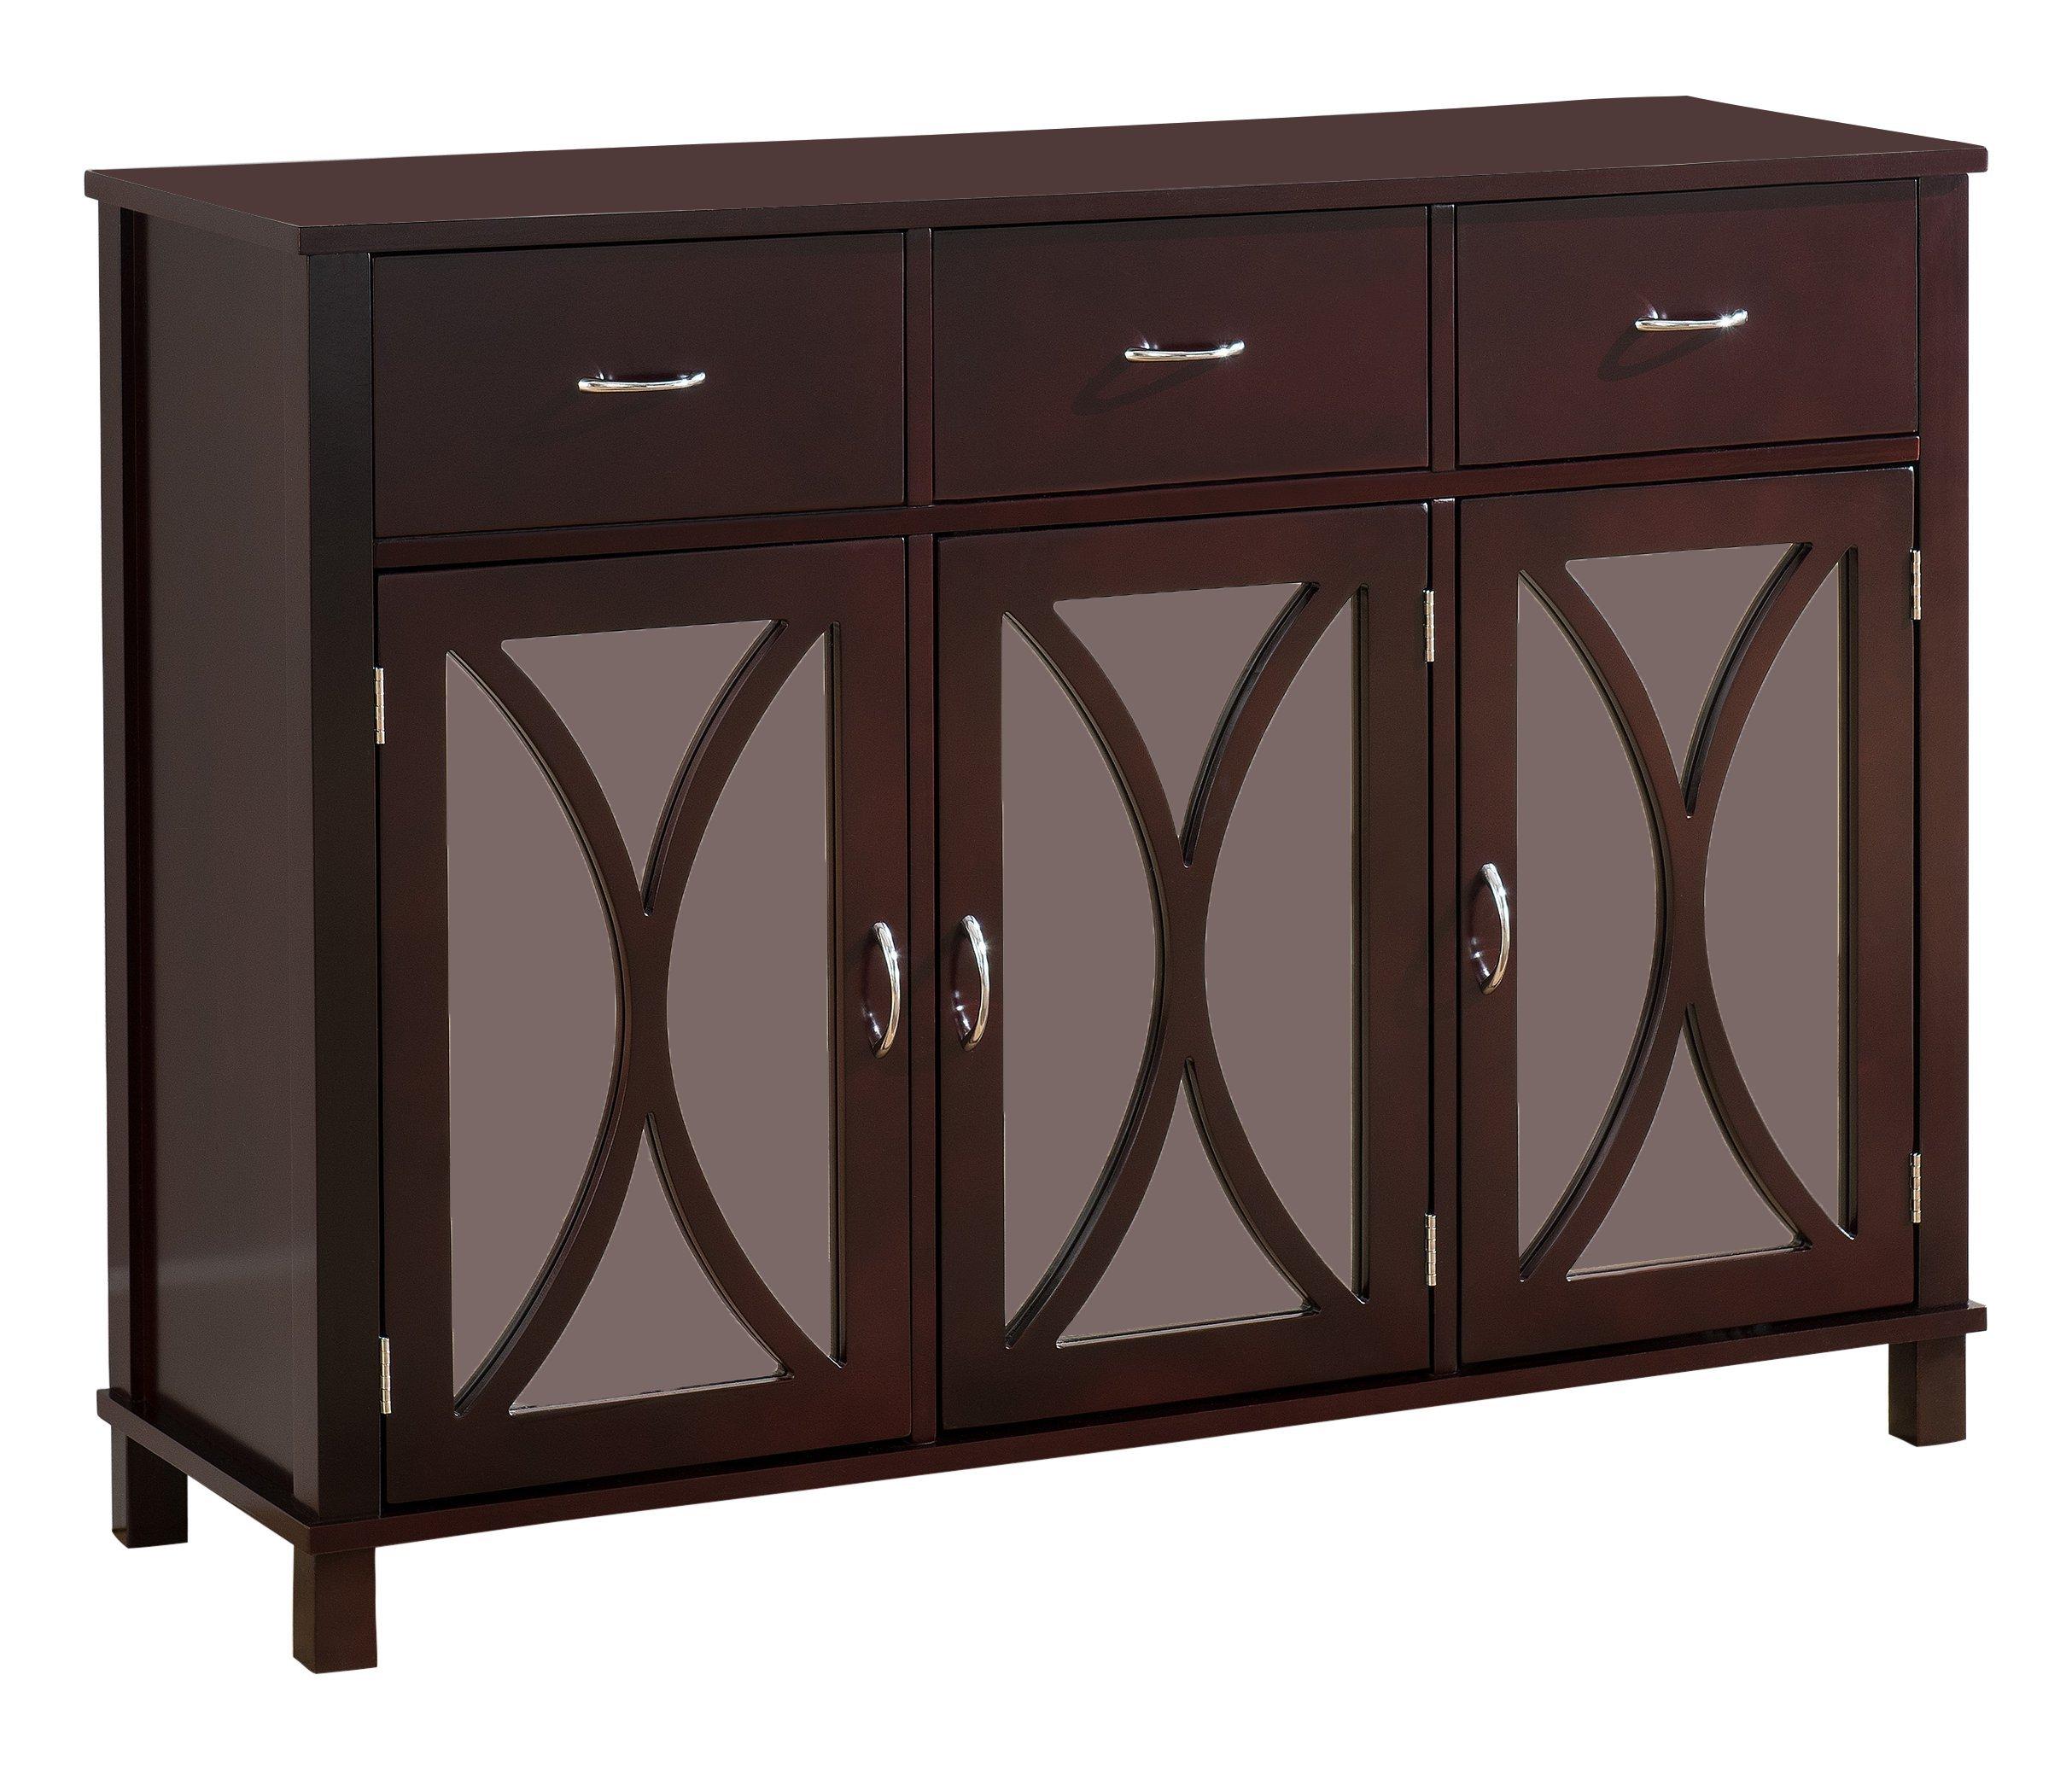 Kings Brand Rutheron Buffet Server Cabinet/Console Table, Mirrored Doors, Espresso by Kings Brand Furniture (Image #3)